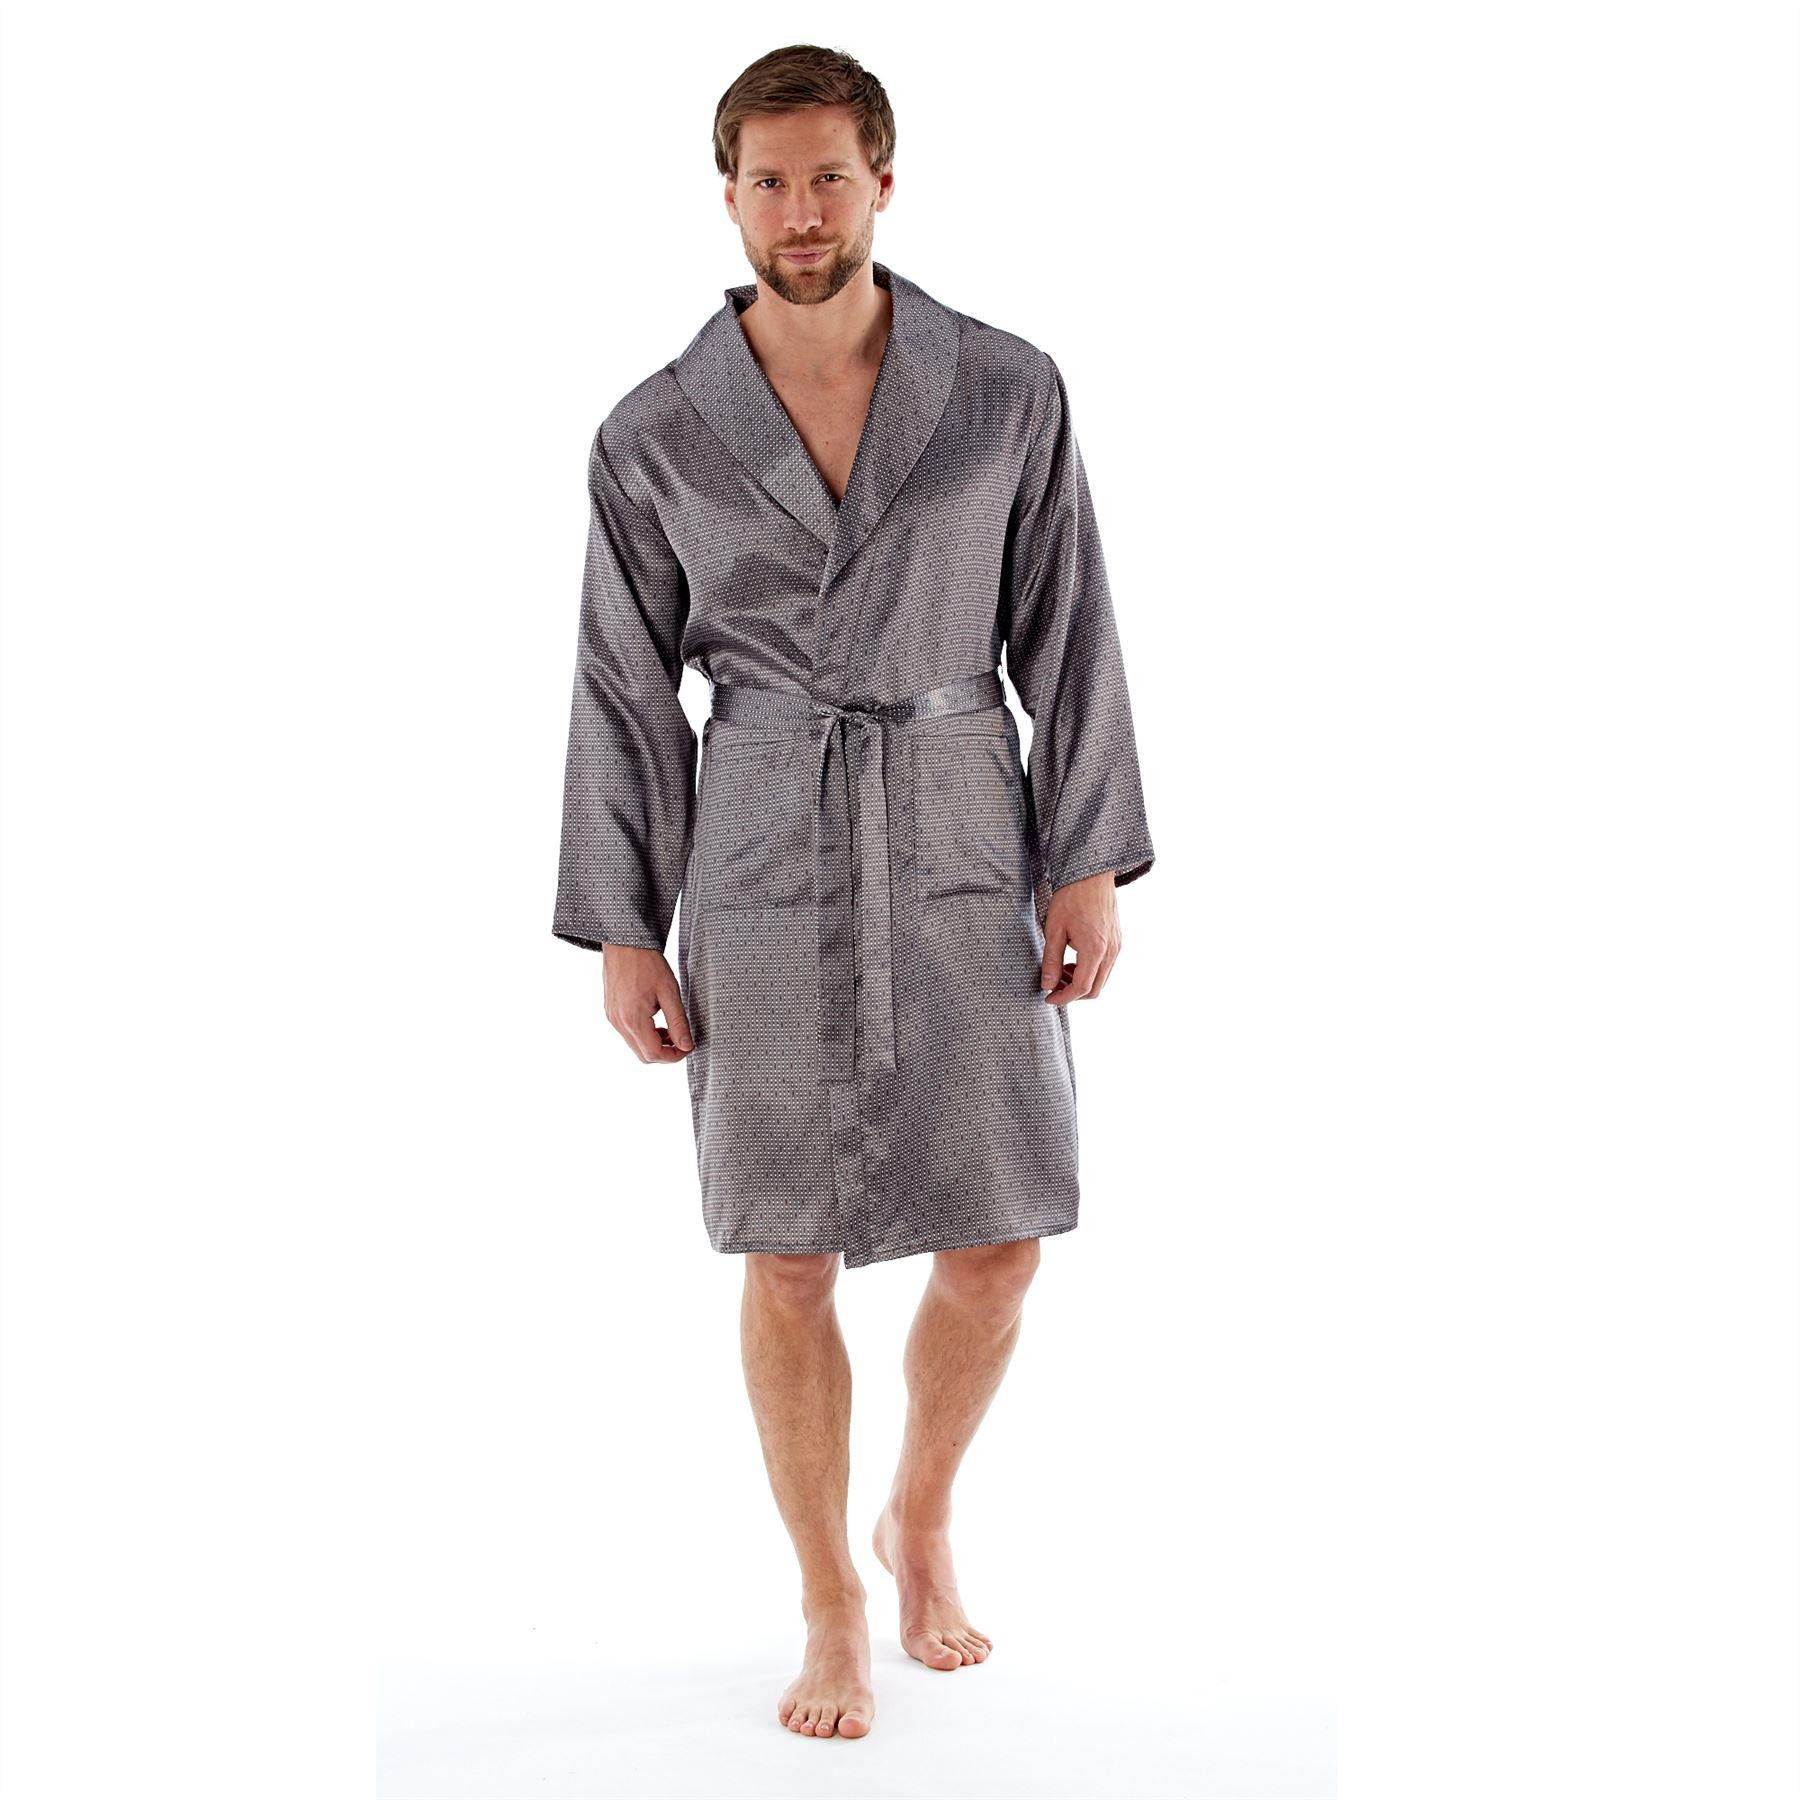 Harvey James Mens Kimono Robe Sleep Lounge Robes